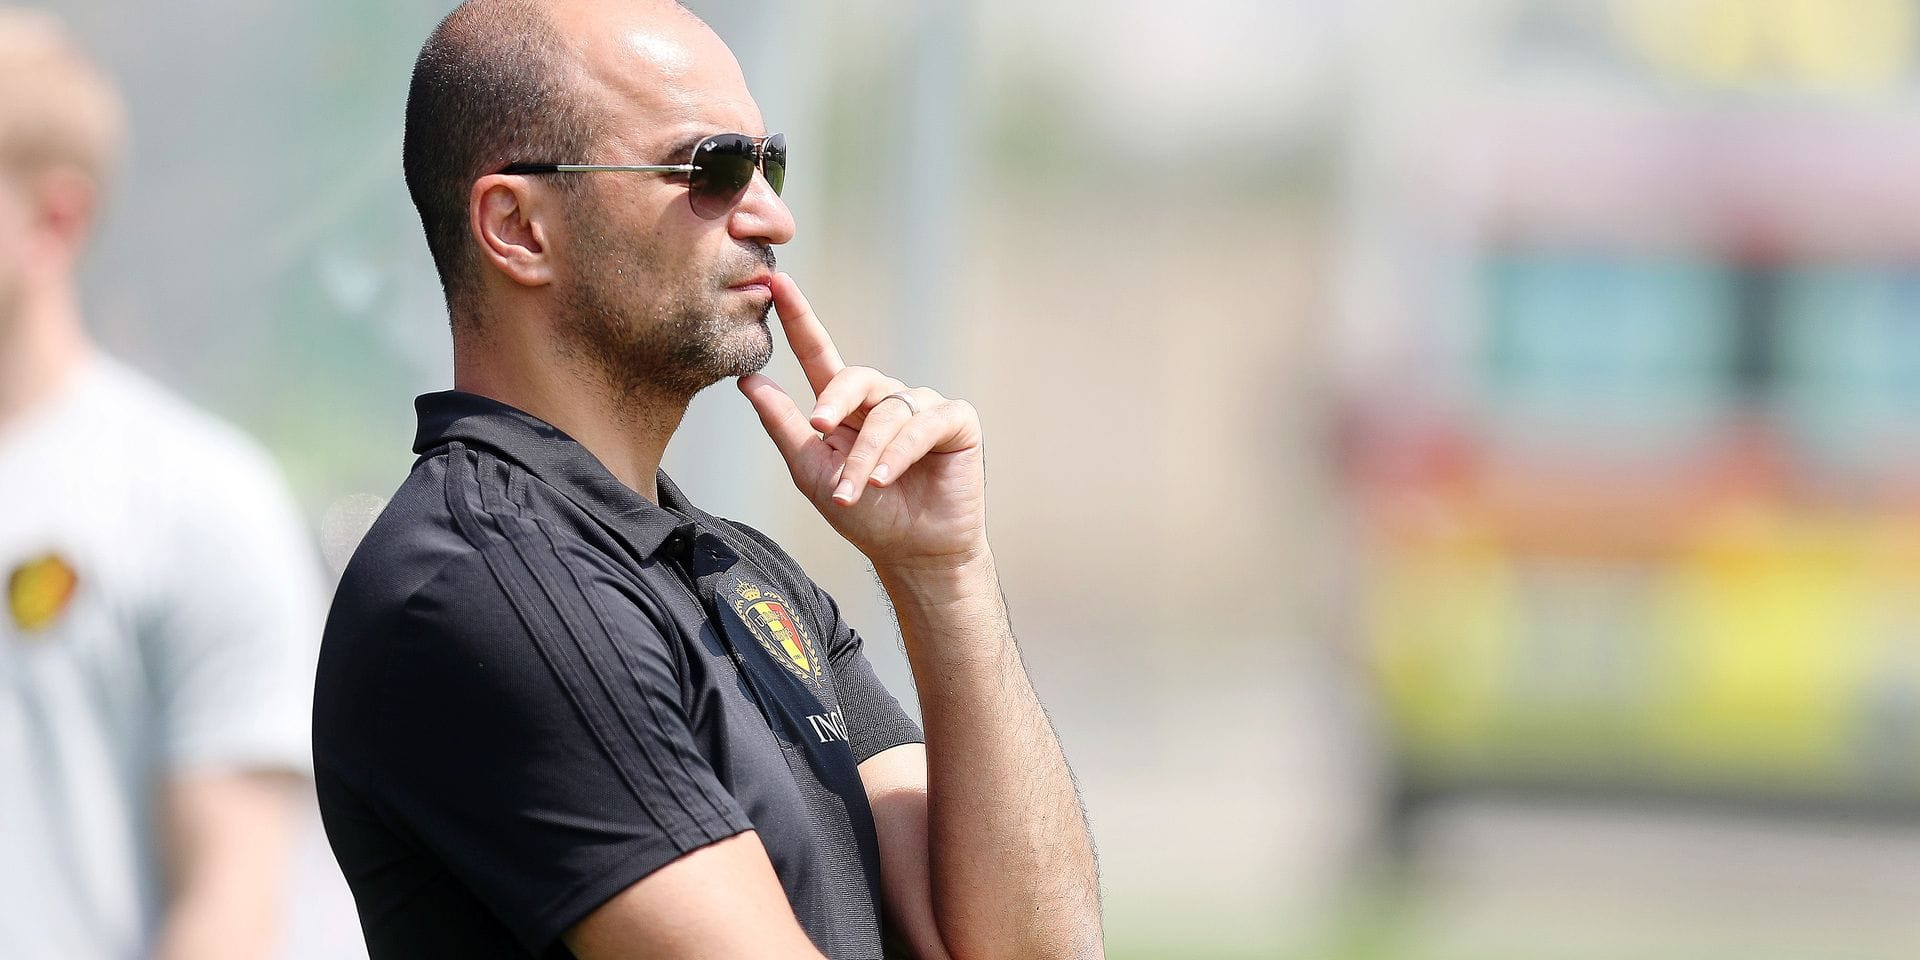 Roberto Martinez pictured during a training session of the U21 youth team of the Belgian national soccer team Red Devils, Monday 17 June 2019, at the 2019 European championships under 21 in Reggio, Italy. BELGA PHOTO BRUNO FAHY